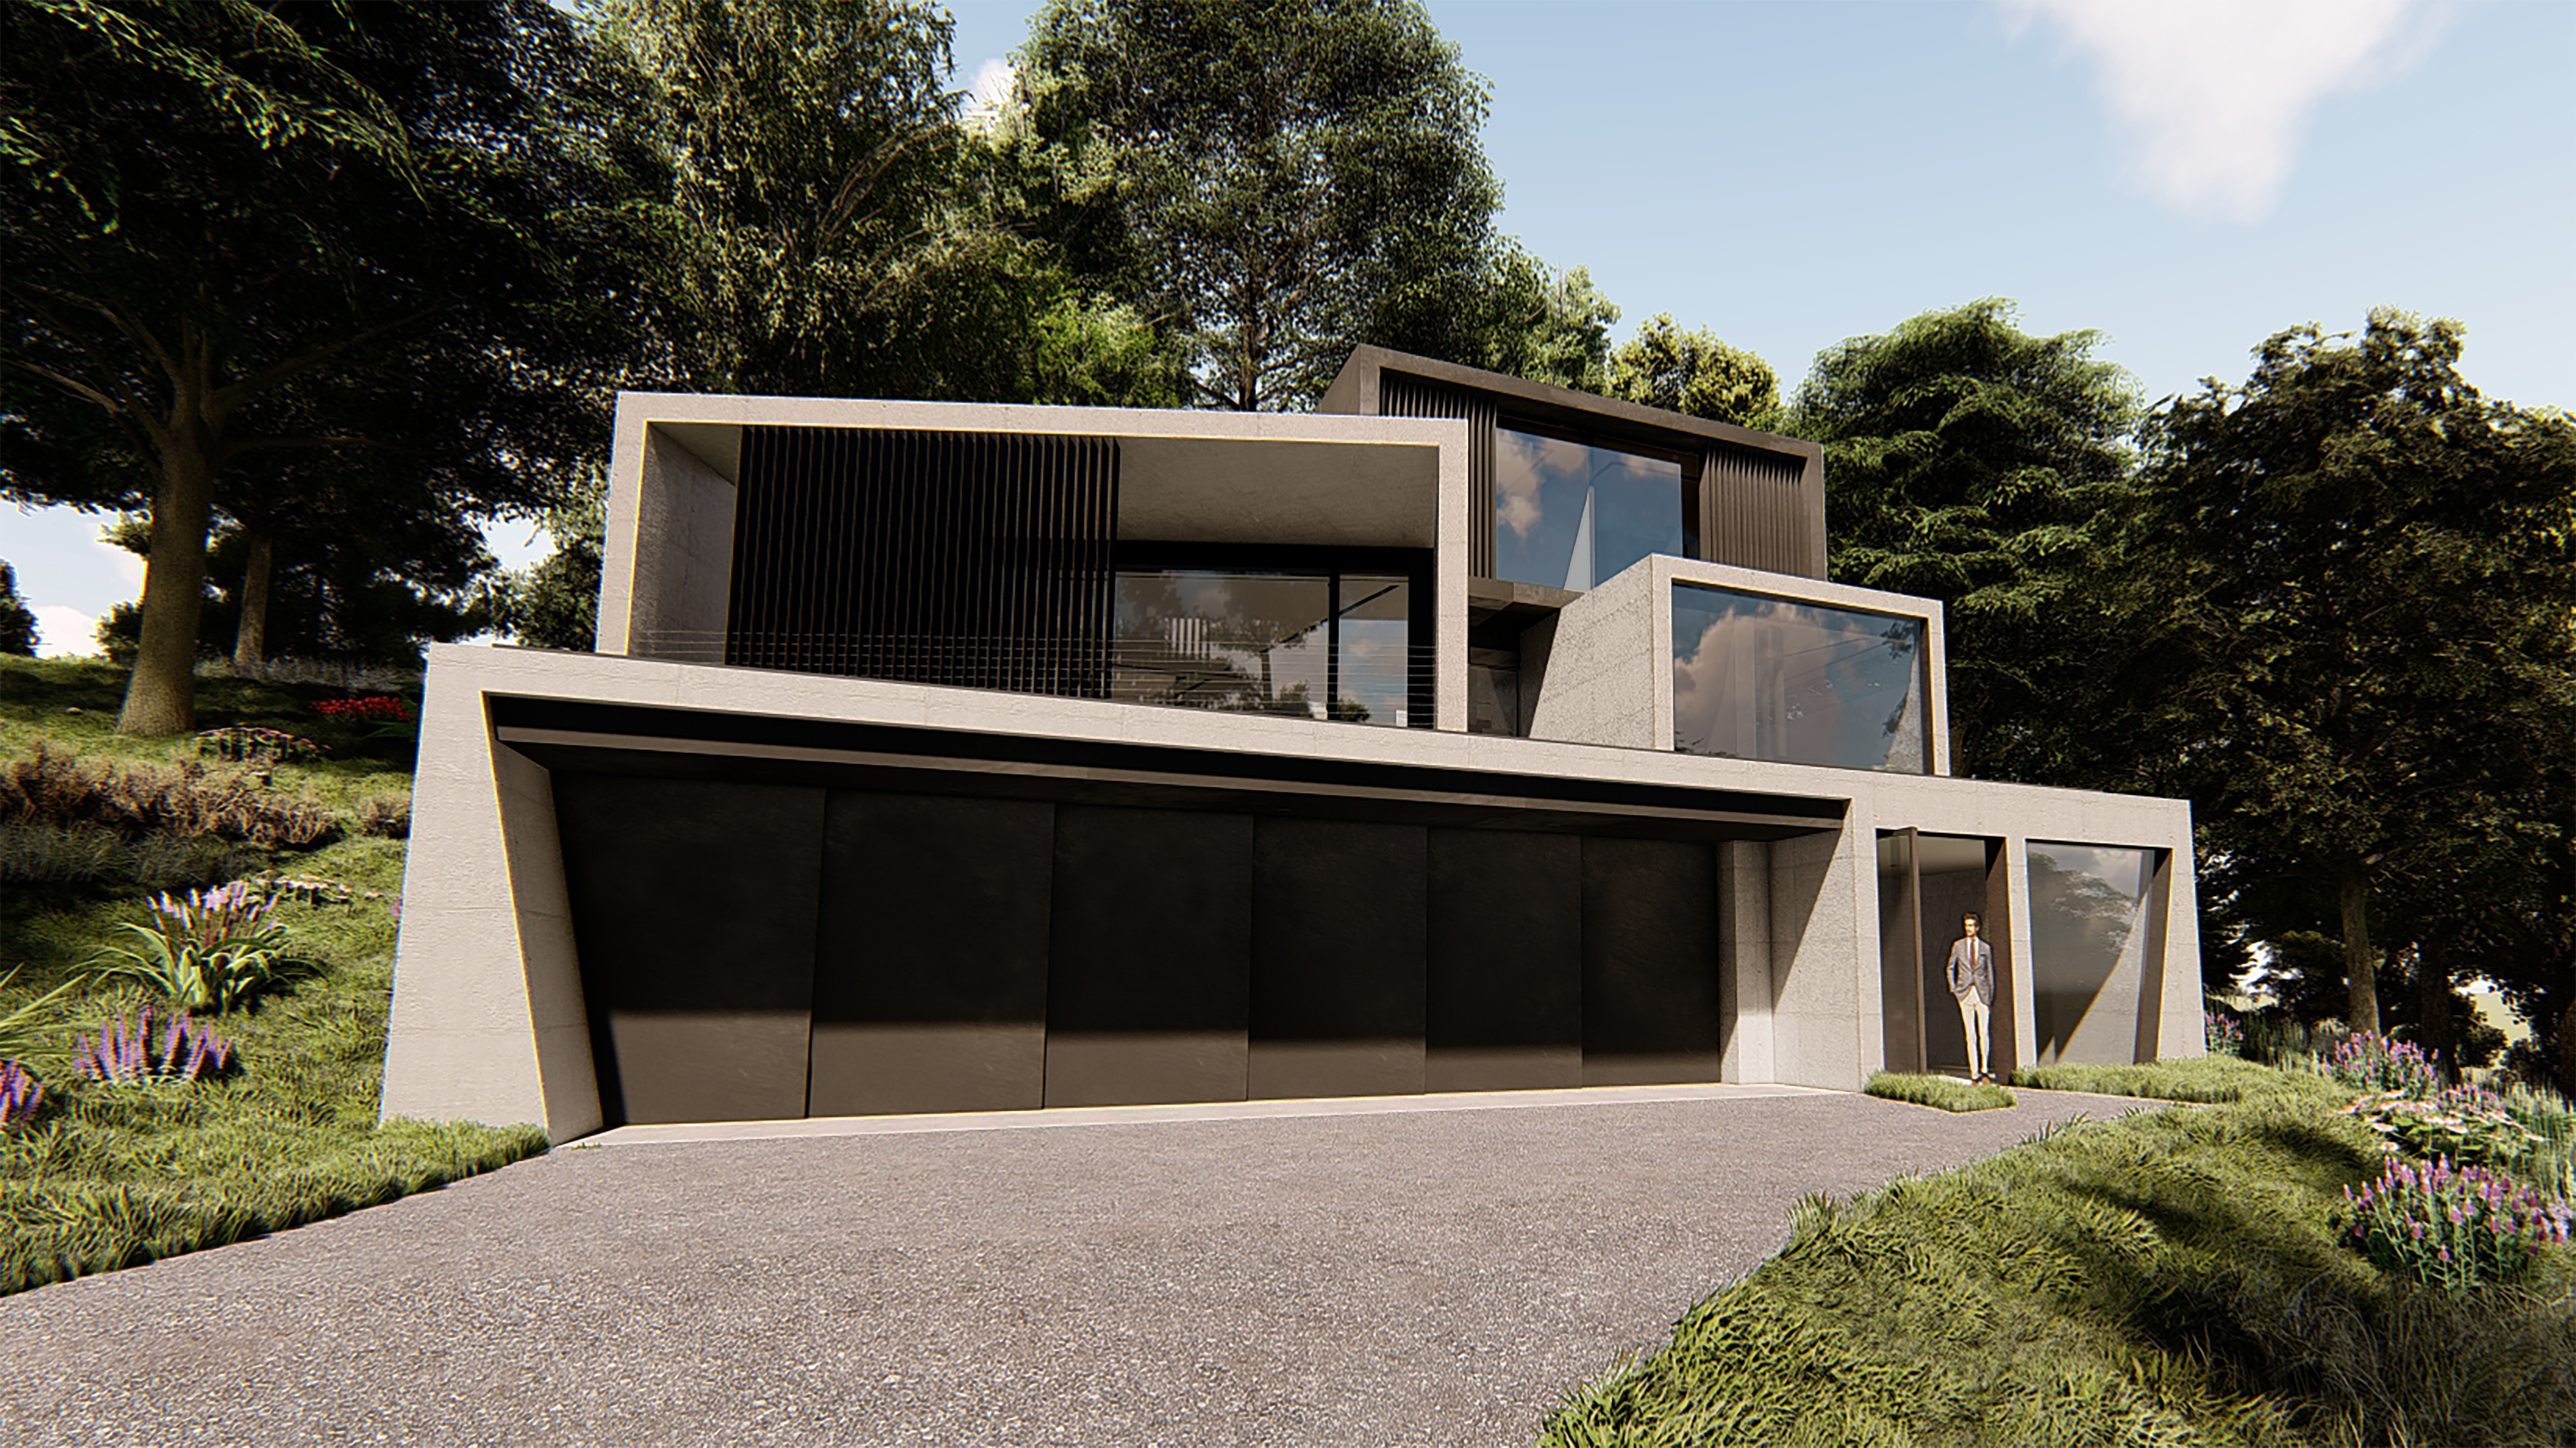 Architectural rendering showing Exterior shot of James Bond inspired home.